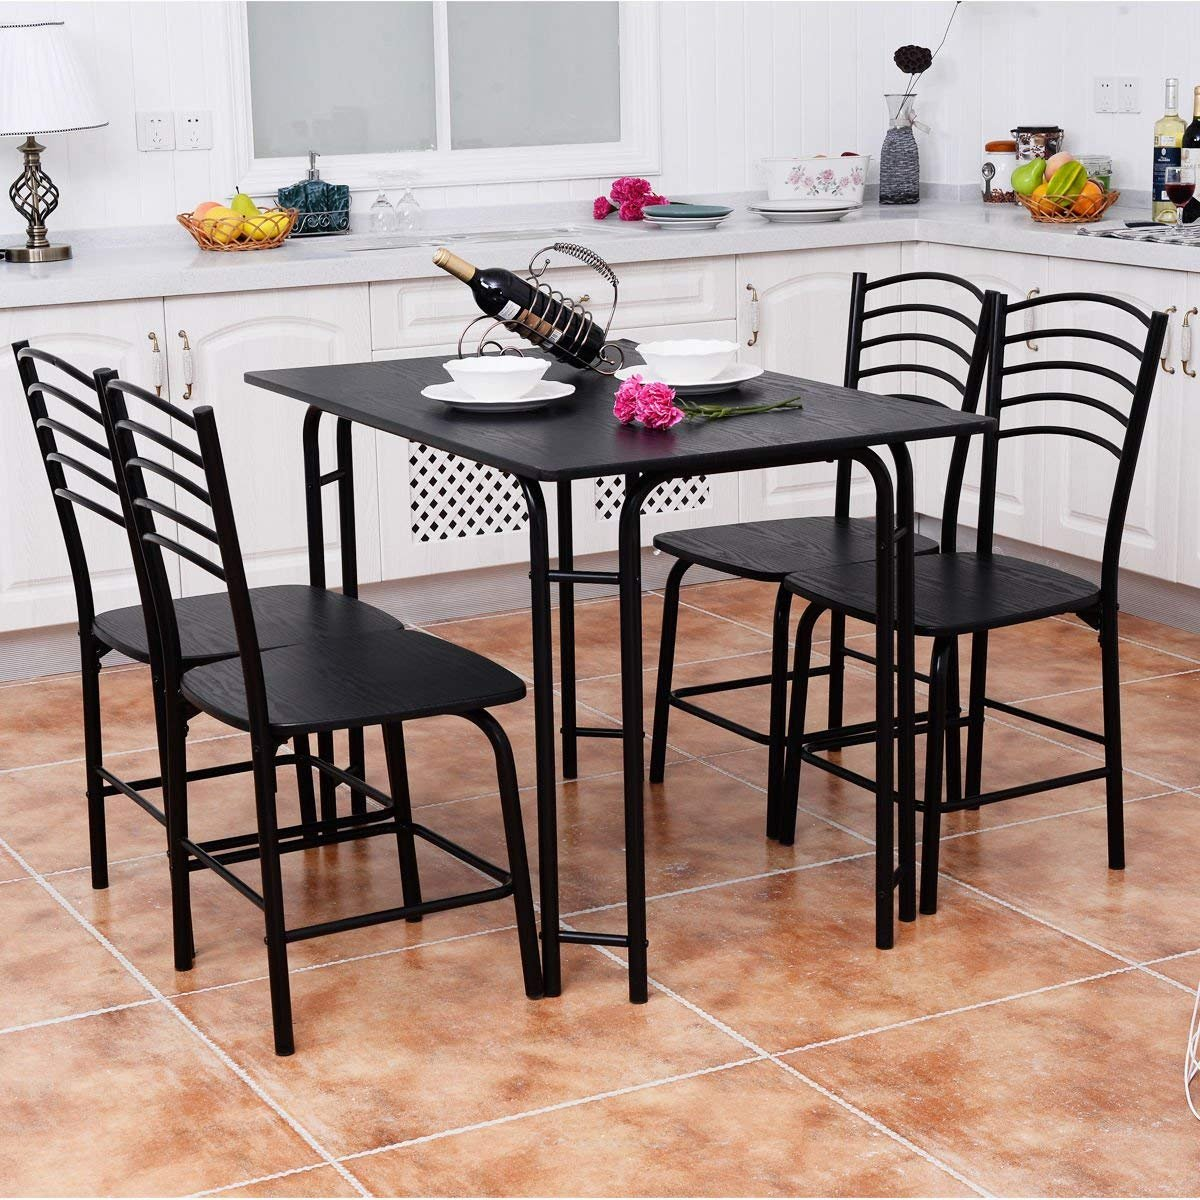 Black Style 3 Wood Metal Dining Room Breakfast Furniture Rectangular Table with 4 Chairs Giantex 5 PCS Dining Table and Chairs Set